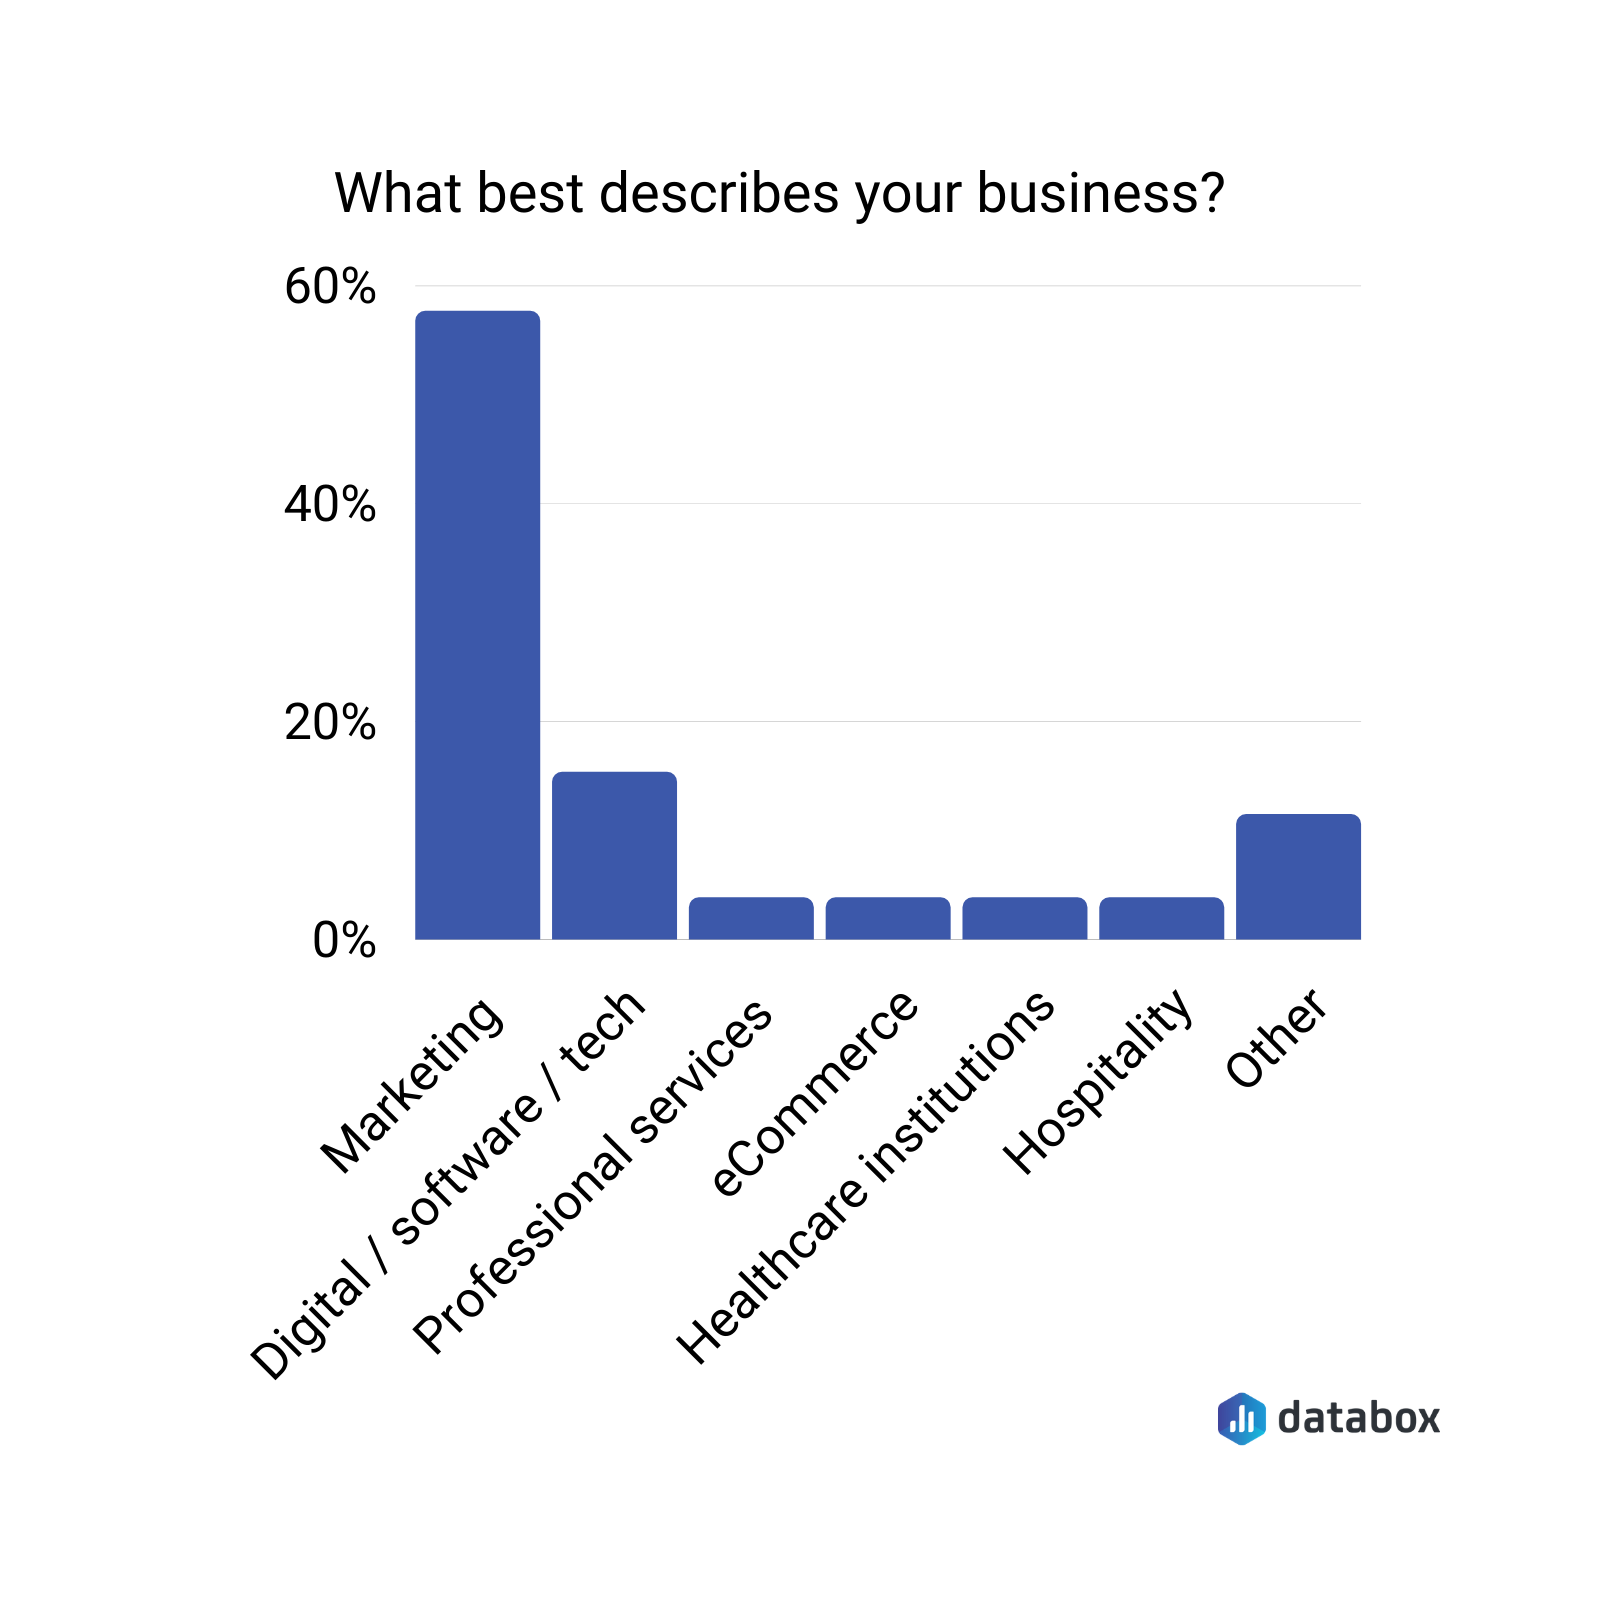 What best describes your business?